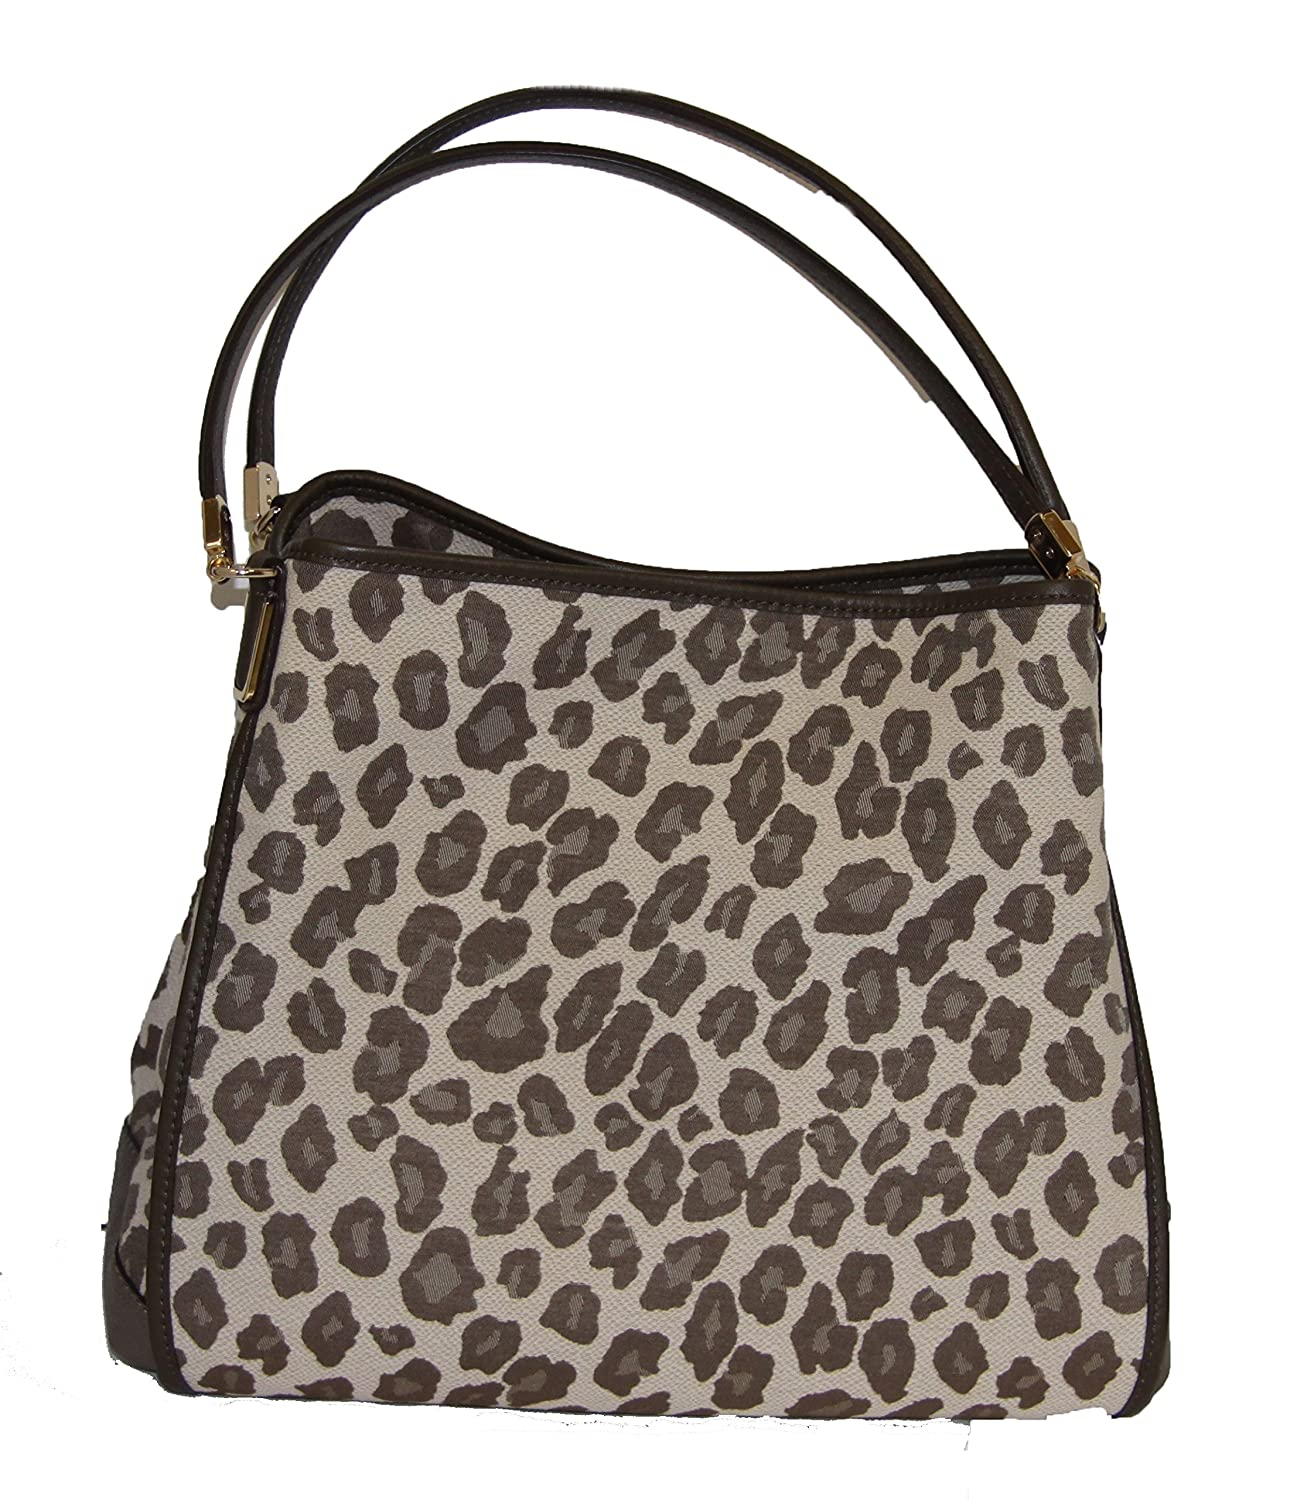 Madison Small Phoebe Shoulder Bag In Leather Amazon 44